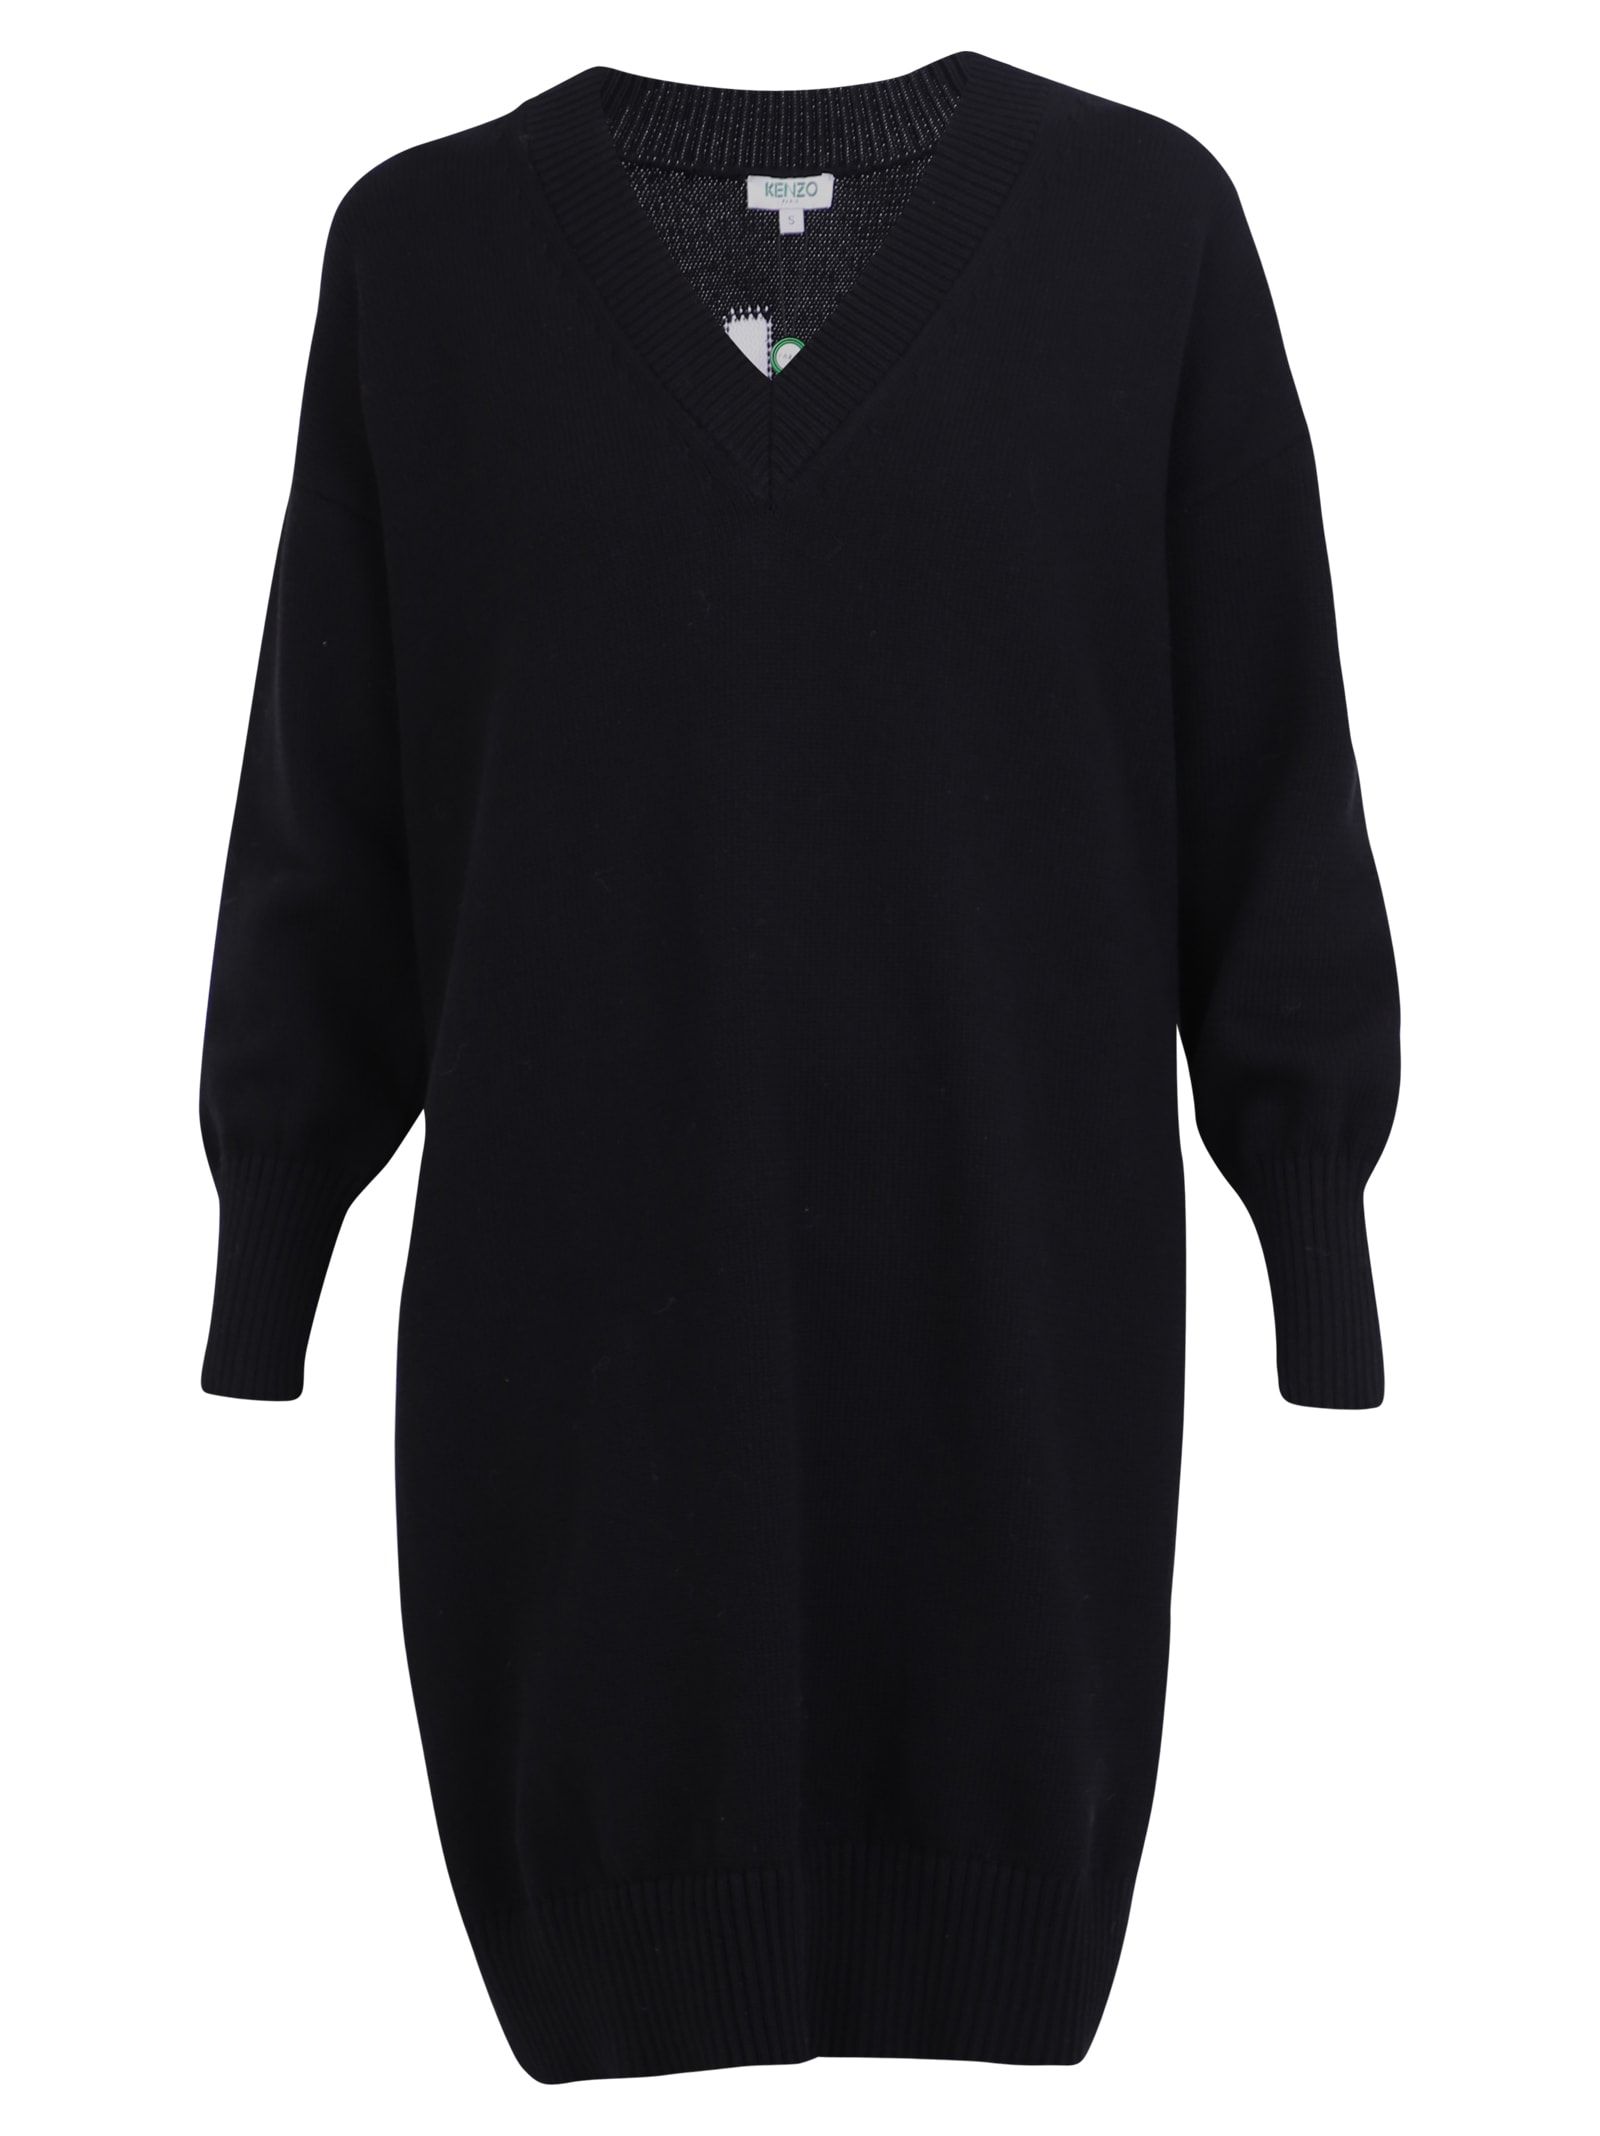 Kenzo Branded Sweater Dress